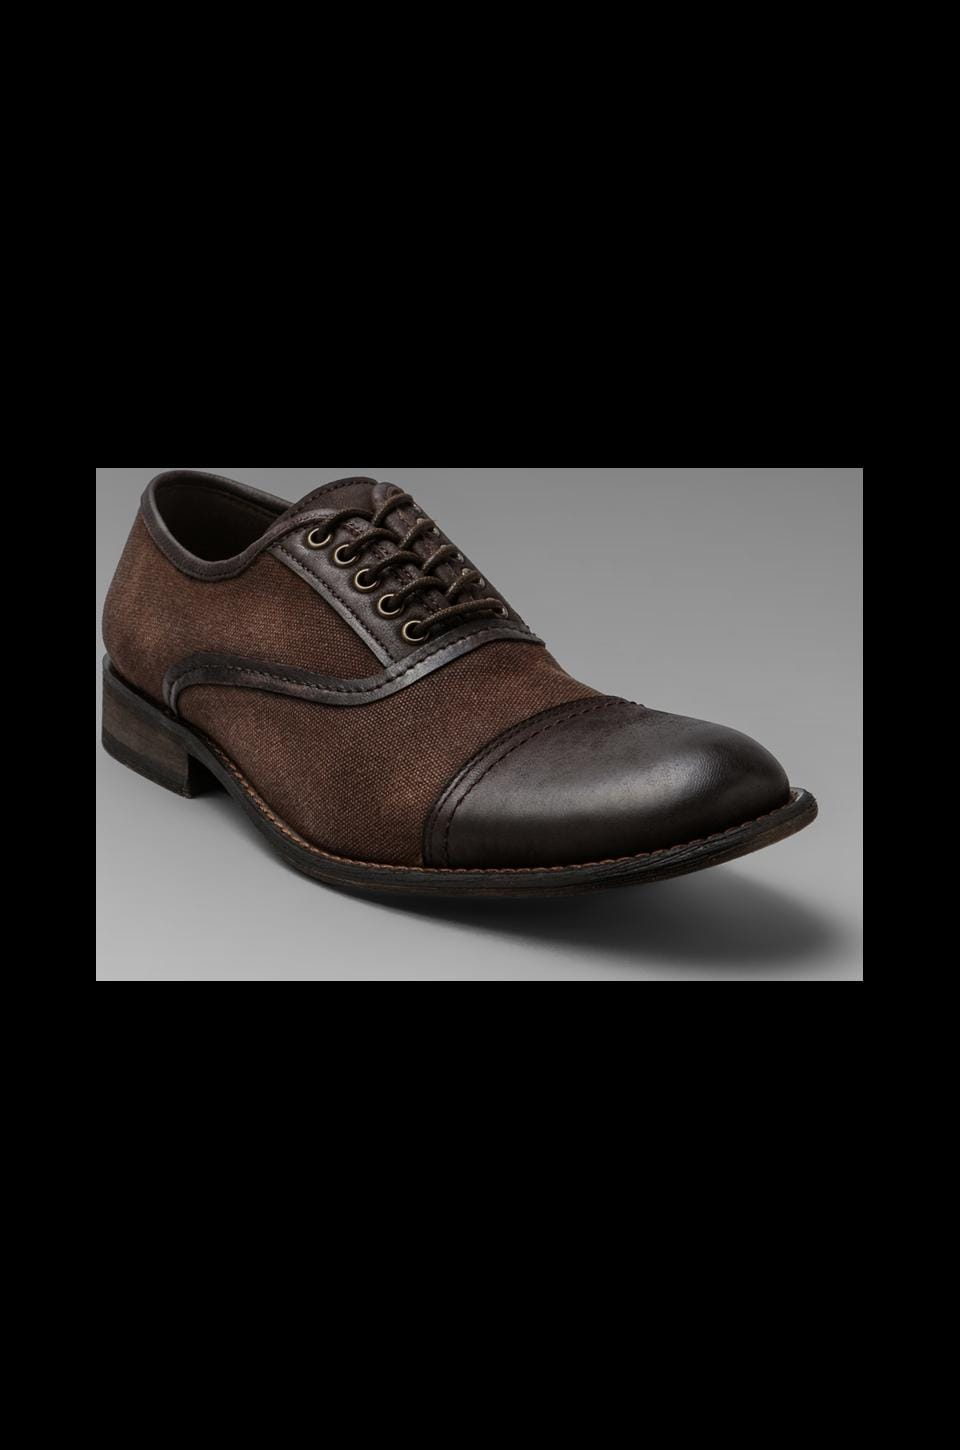 Rogue Best Man Cap Toe Oxford in Brown